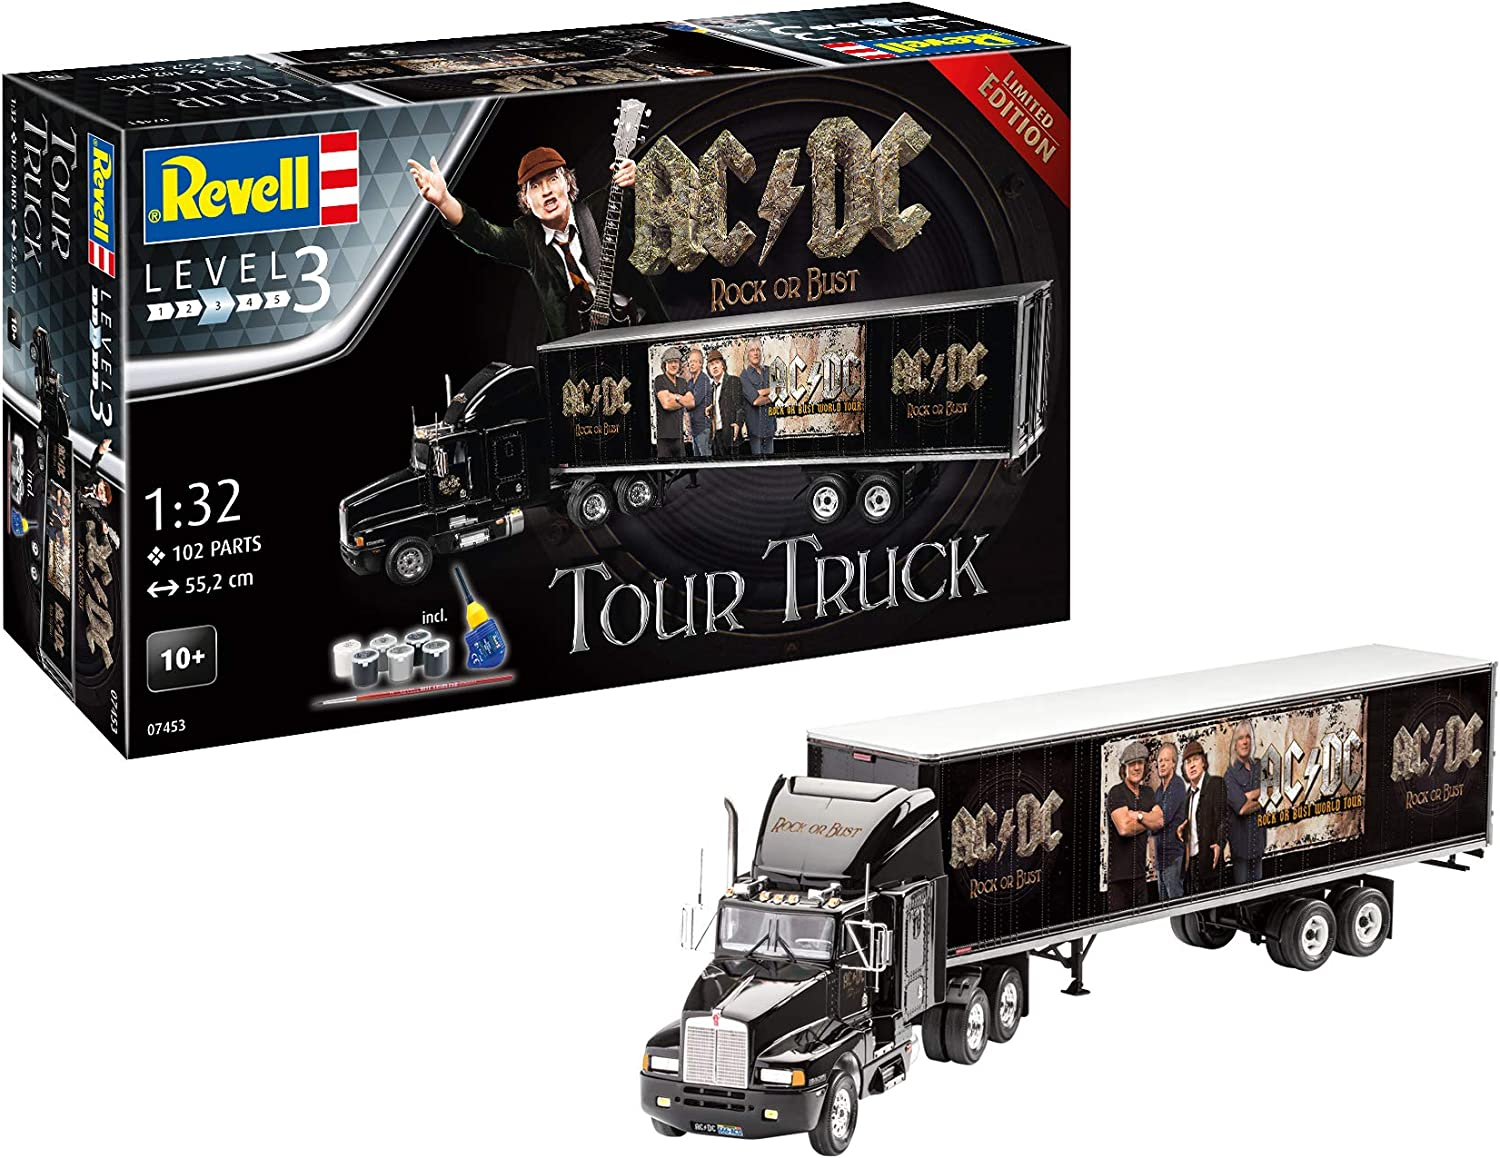 Revell- AC DC Tour Truck Rock or autobust Kit modellolo, MultiColoreeee, 55,2 cm, 07453